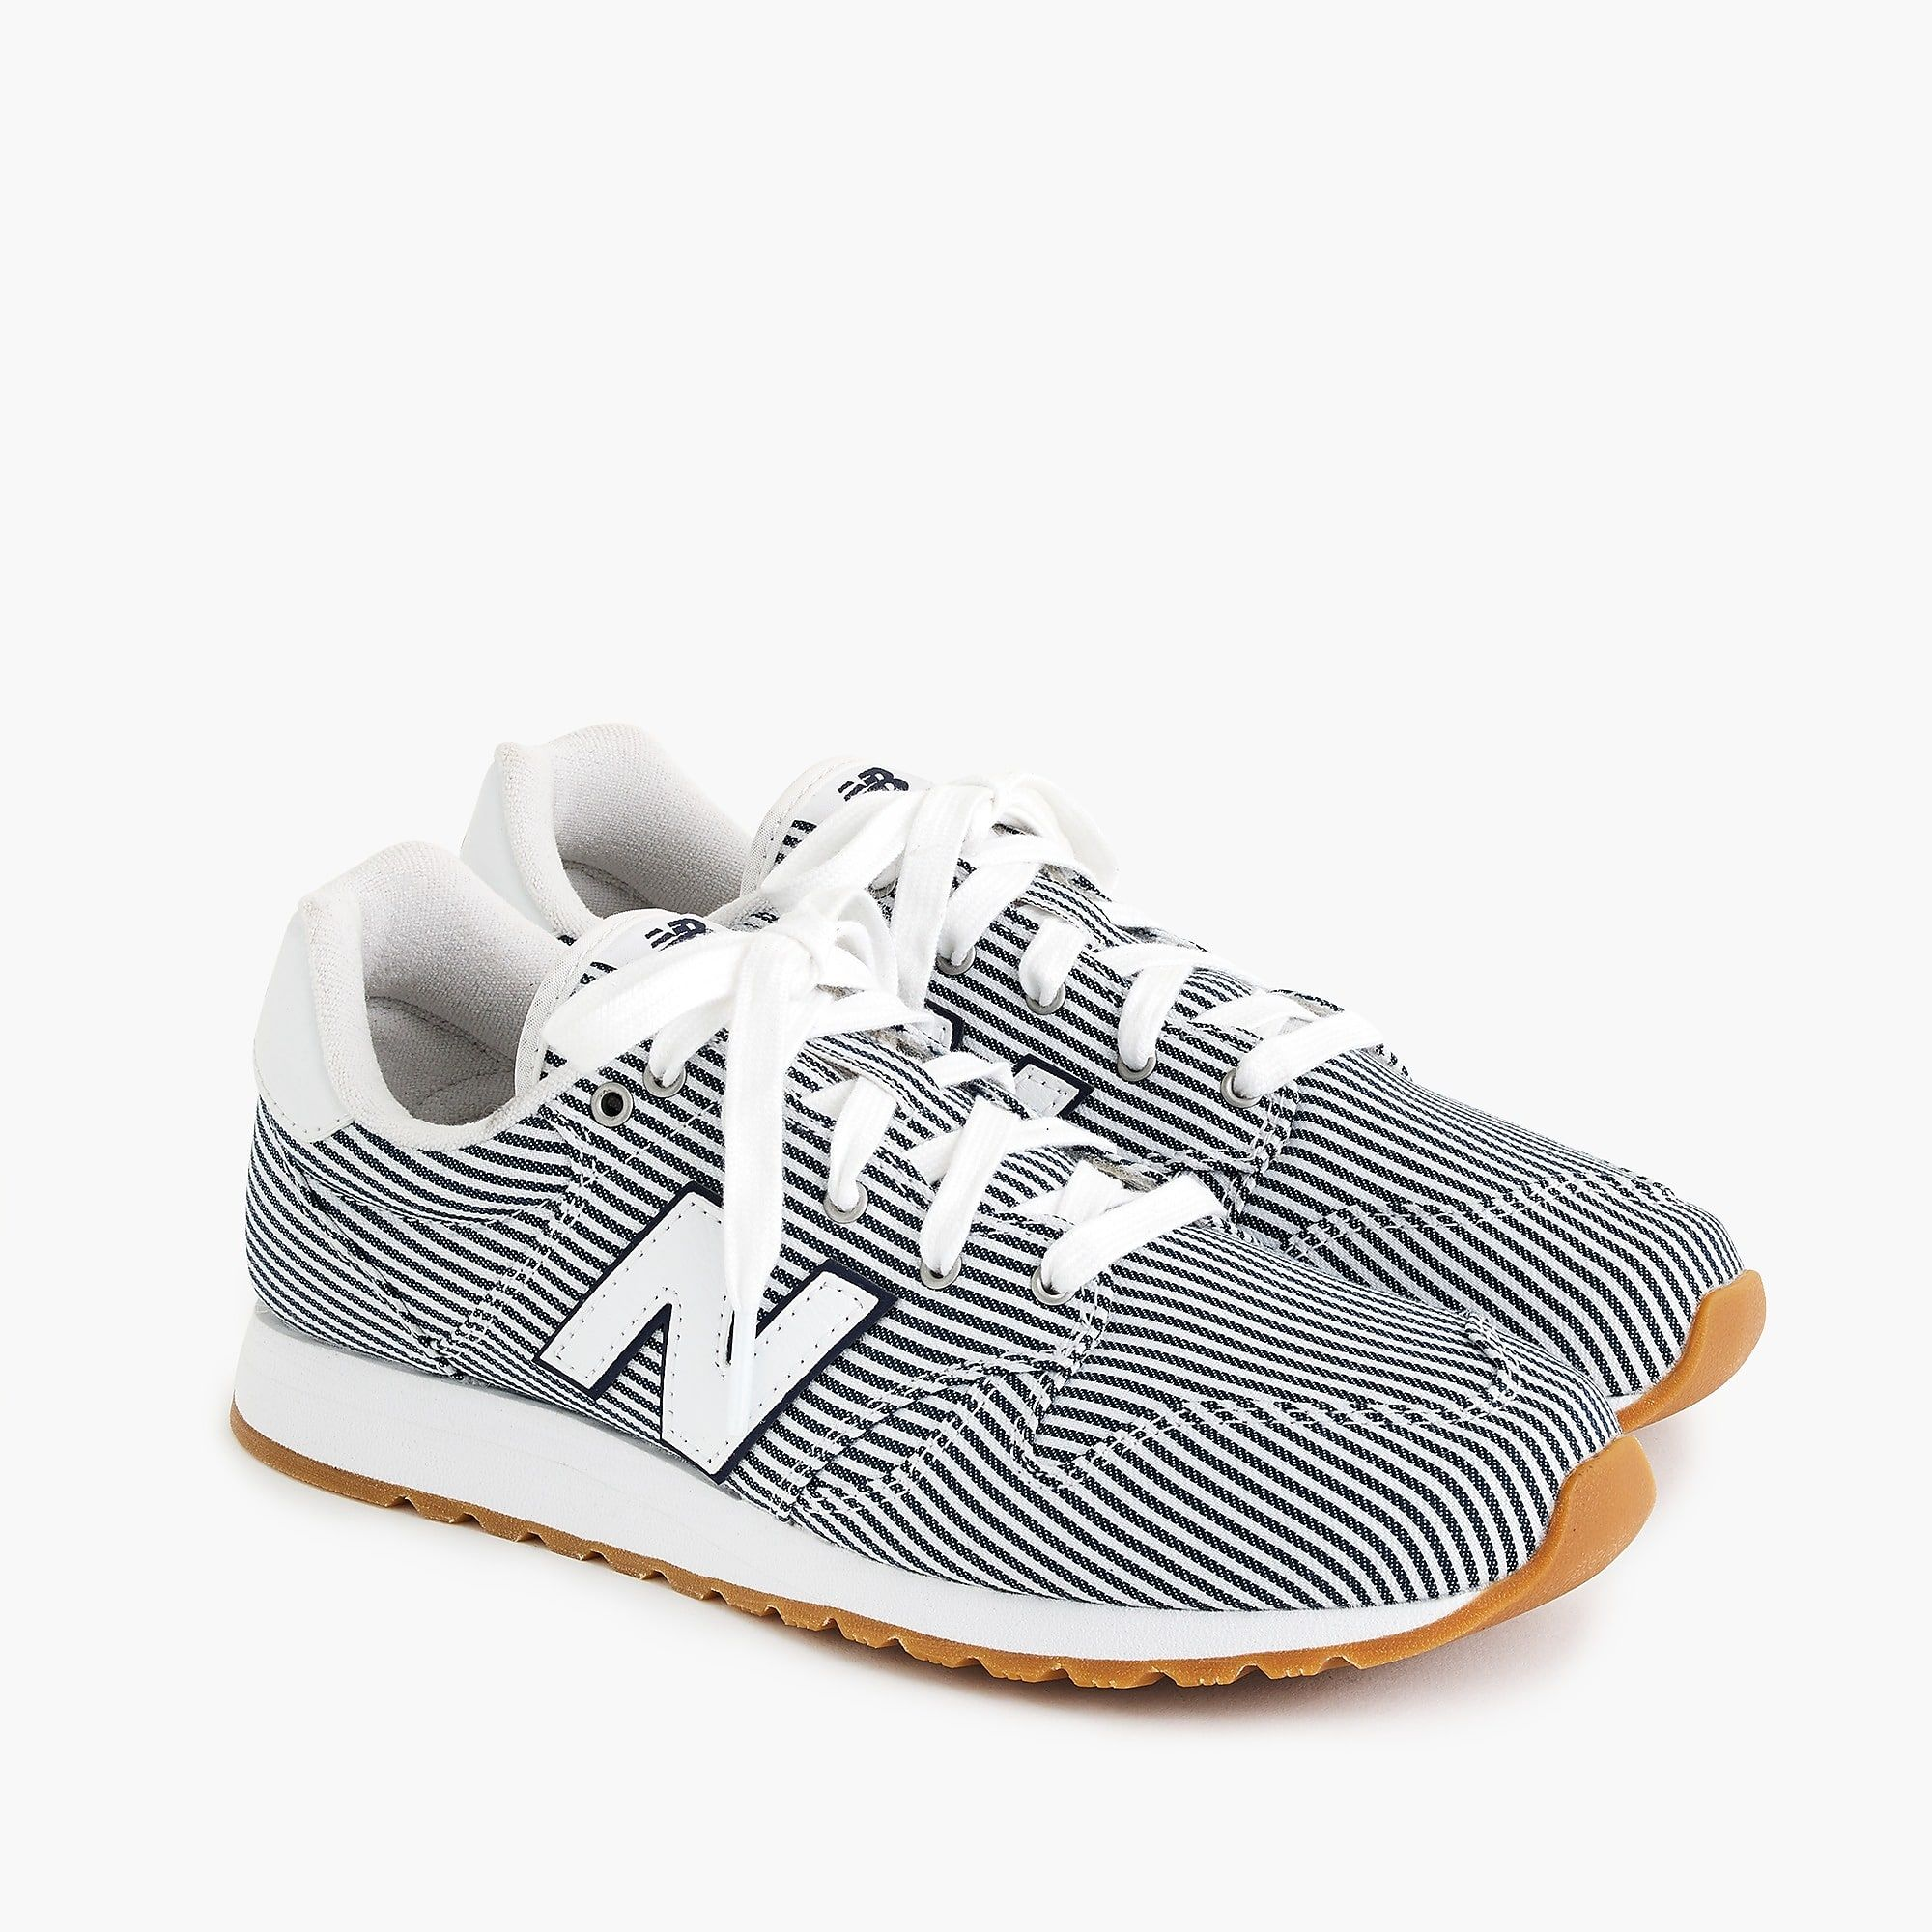 bb66437bb38d6 Women's New Balance for J.Crew 520 sneakers // #shoes #stripes ...